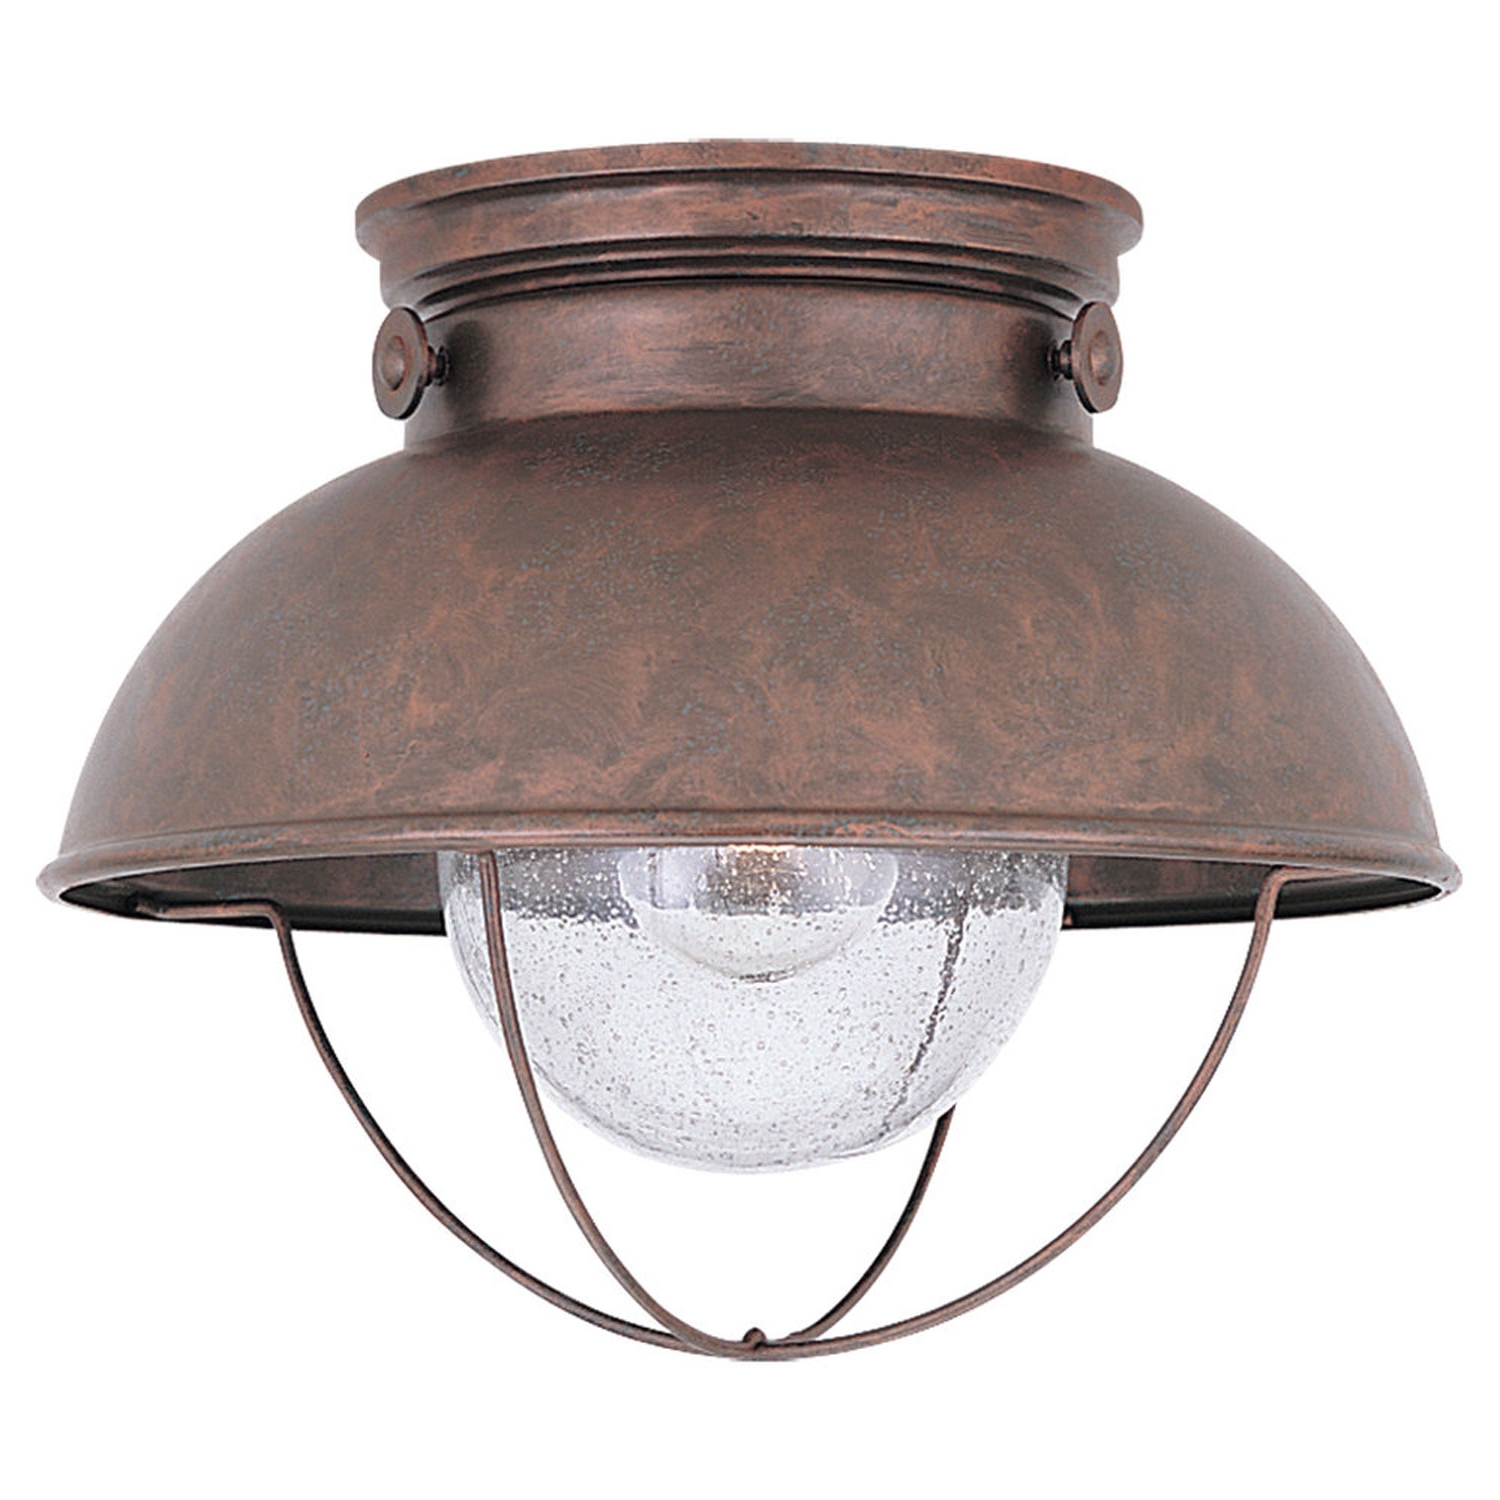 Famous Outdoor Ceiling Lighting (View 8 of 20)